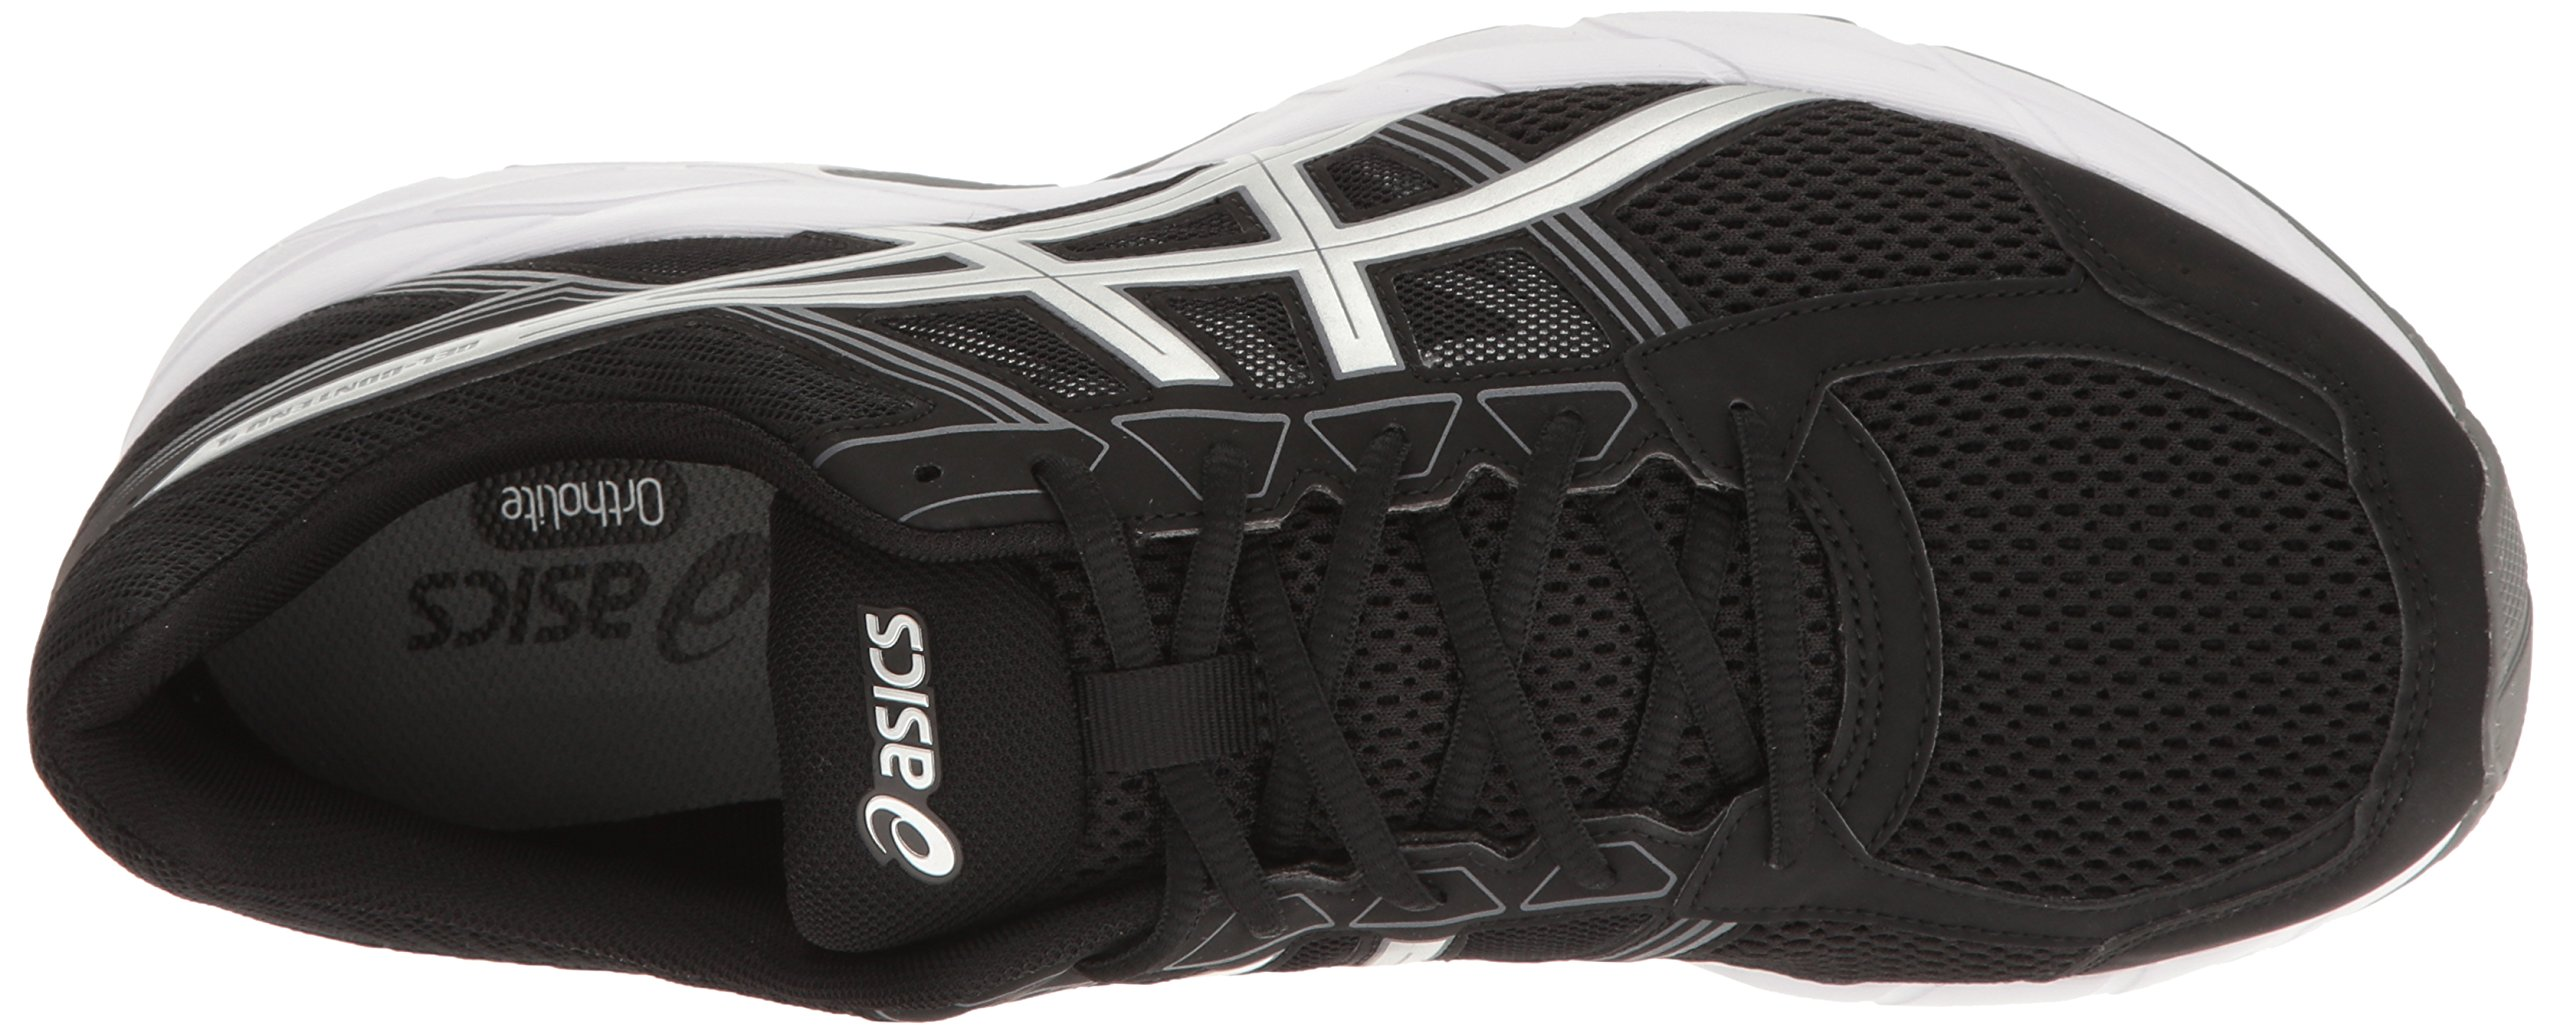 ASICS Men's Gel-Contend 4 Running Shoe, Black/Silver/Carbon, 7.5 M US by ASICS (Image #8)